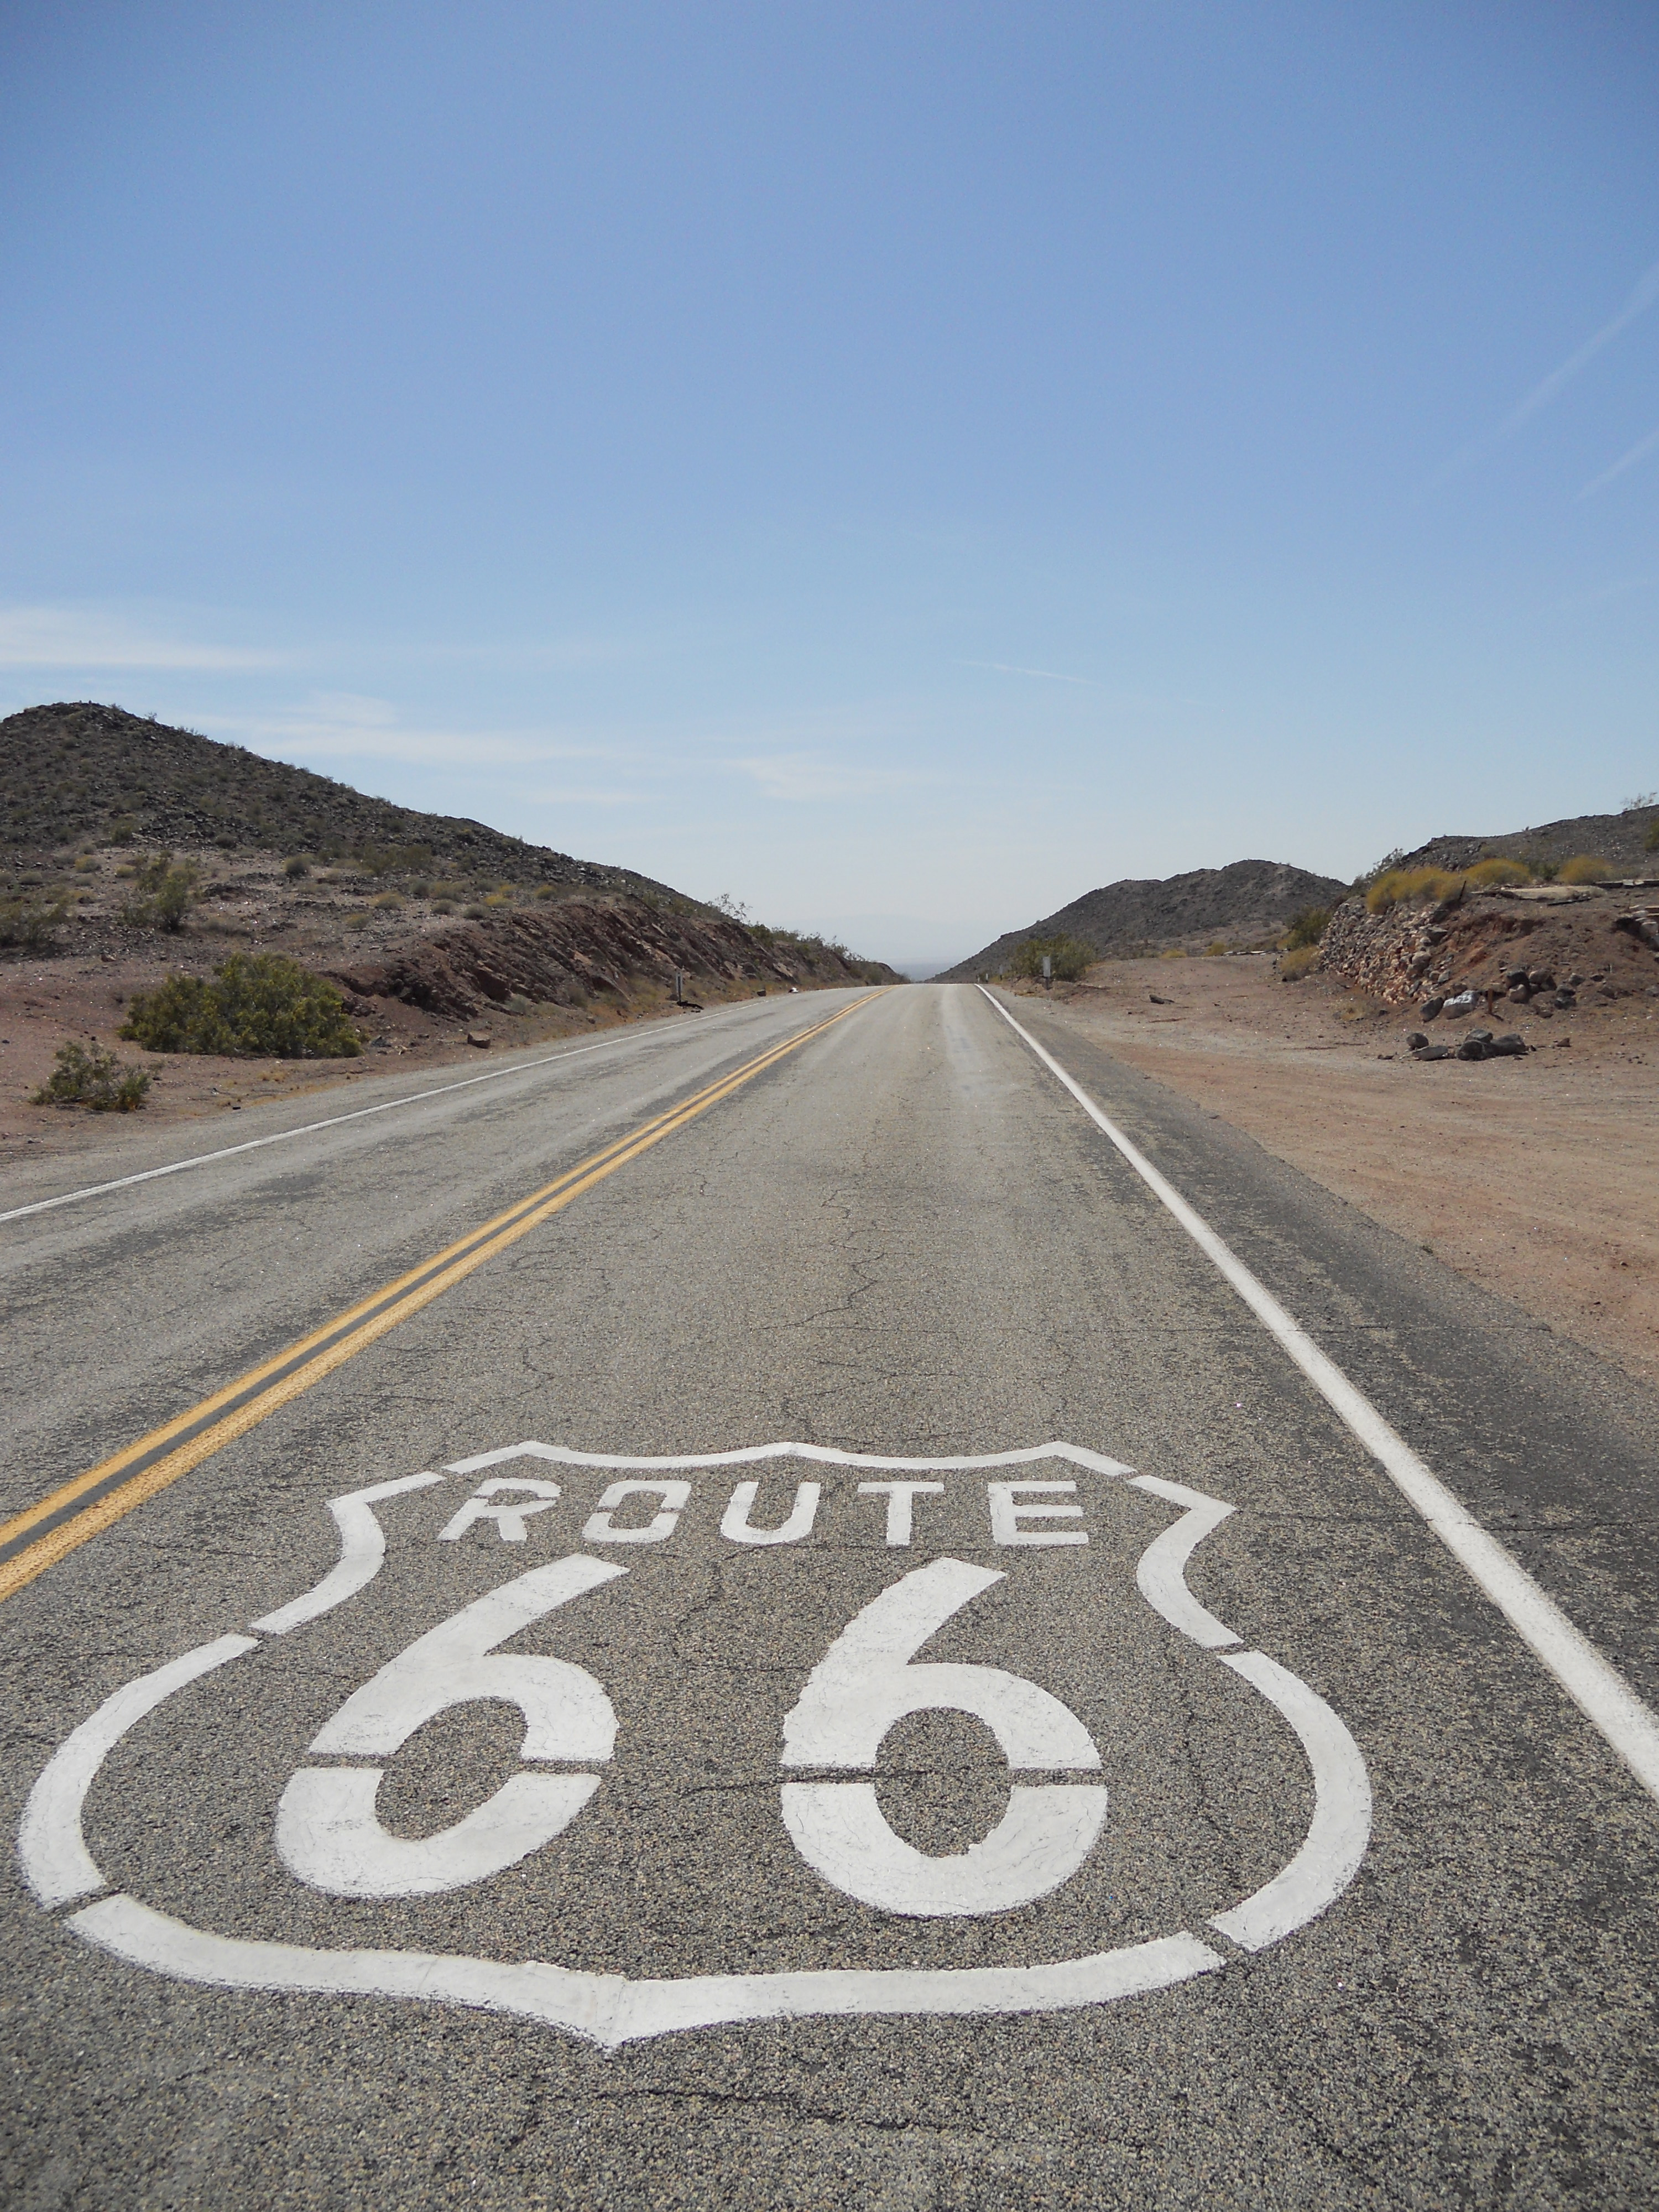 Paul Hogarths Personal Blog - Map us highway route 66